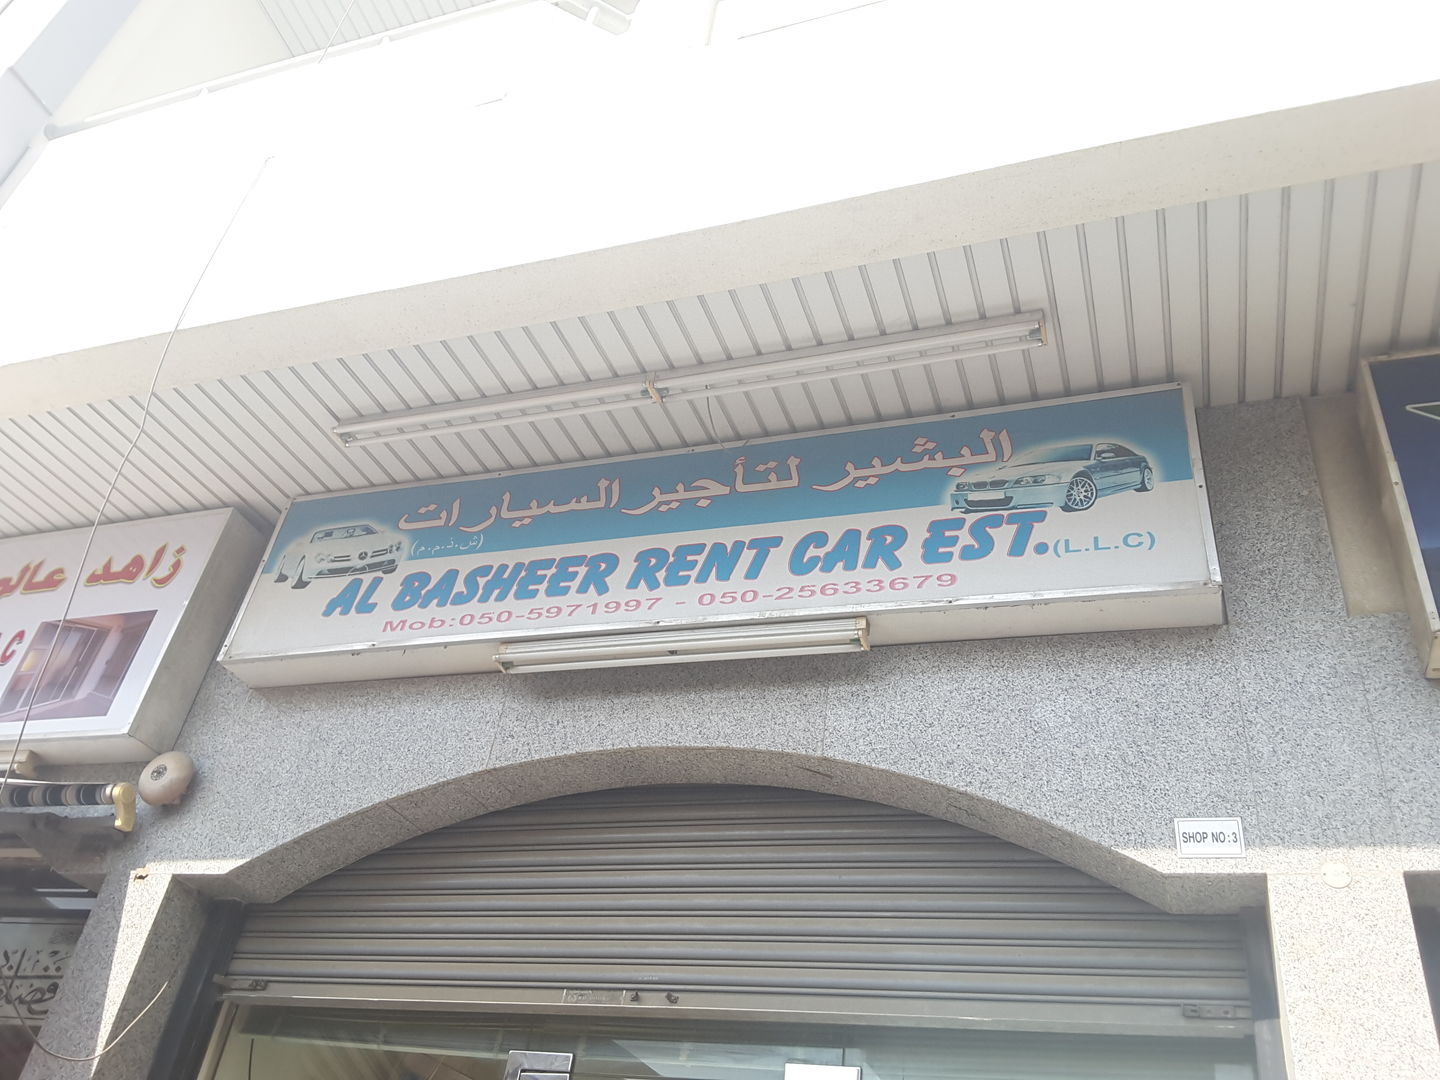 Walif-business-al-basheer-rent-a-car